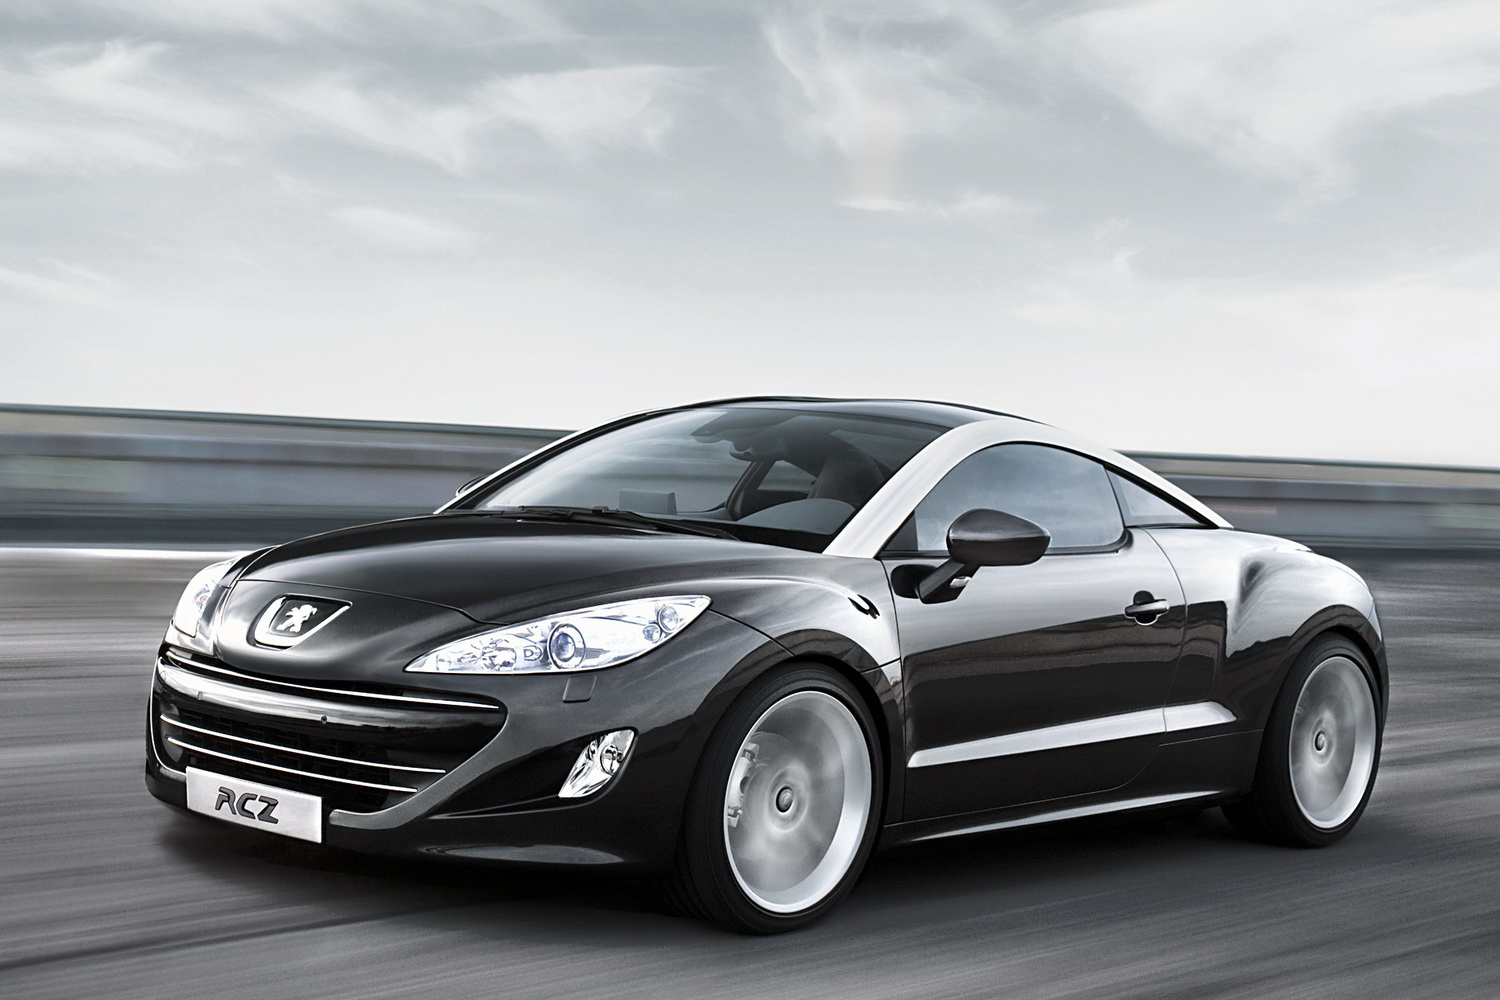 peugeot rcz sports coupe 2013 7 auto design tech. Black Bedroom Furniture Sets. Home Design Ideas